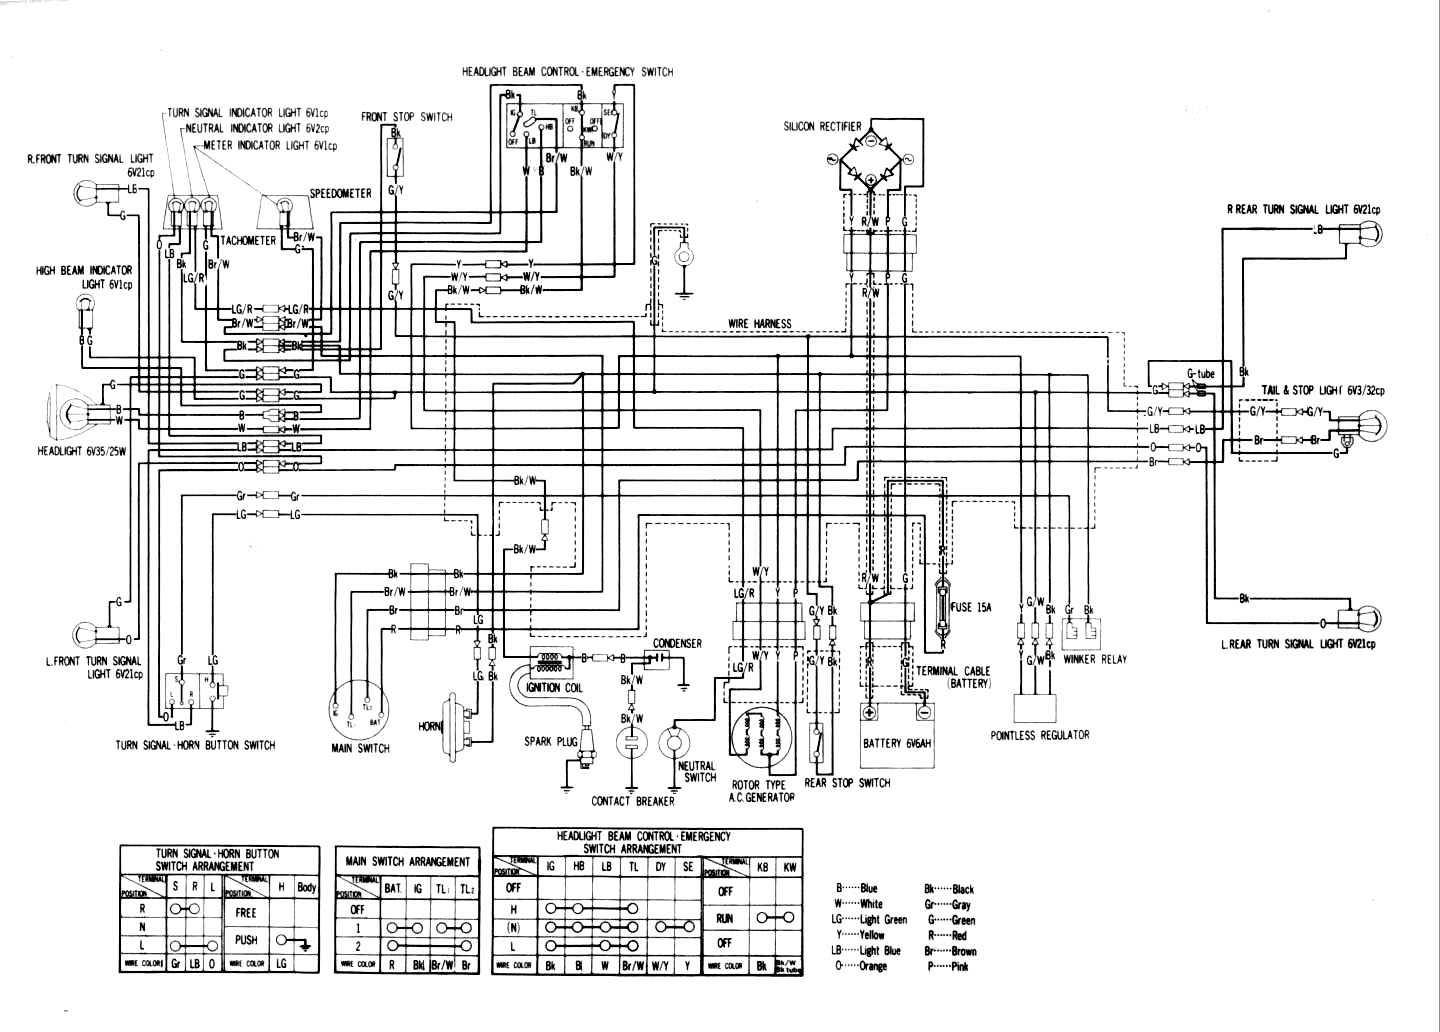 Wiring Diagram In Addition Honda Shadow 600 On Virago Bobber ... on